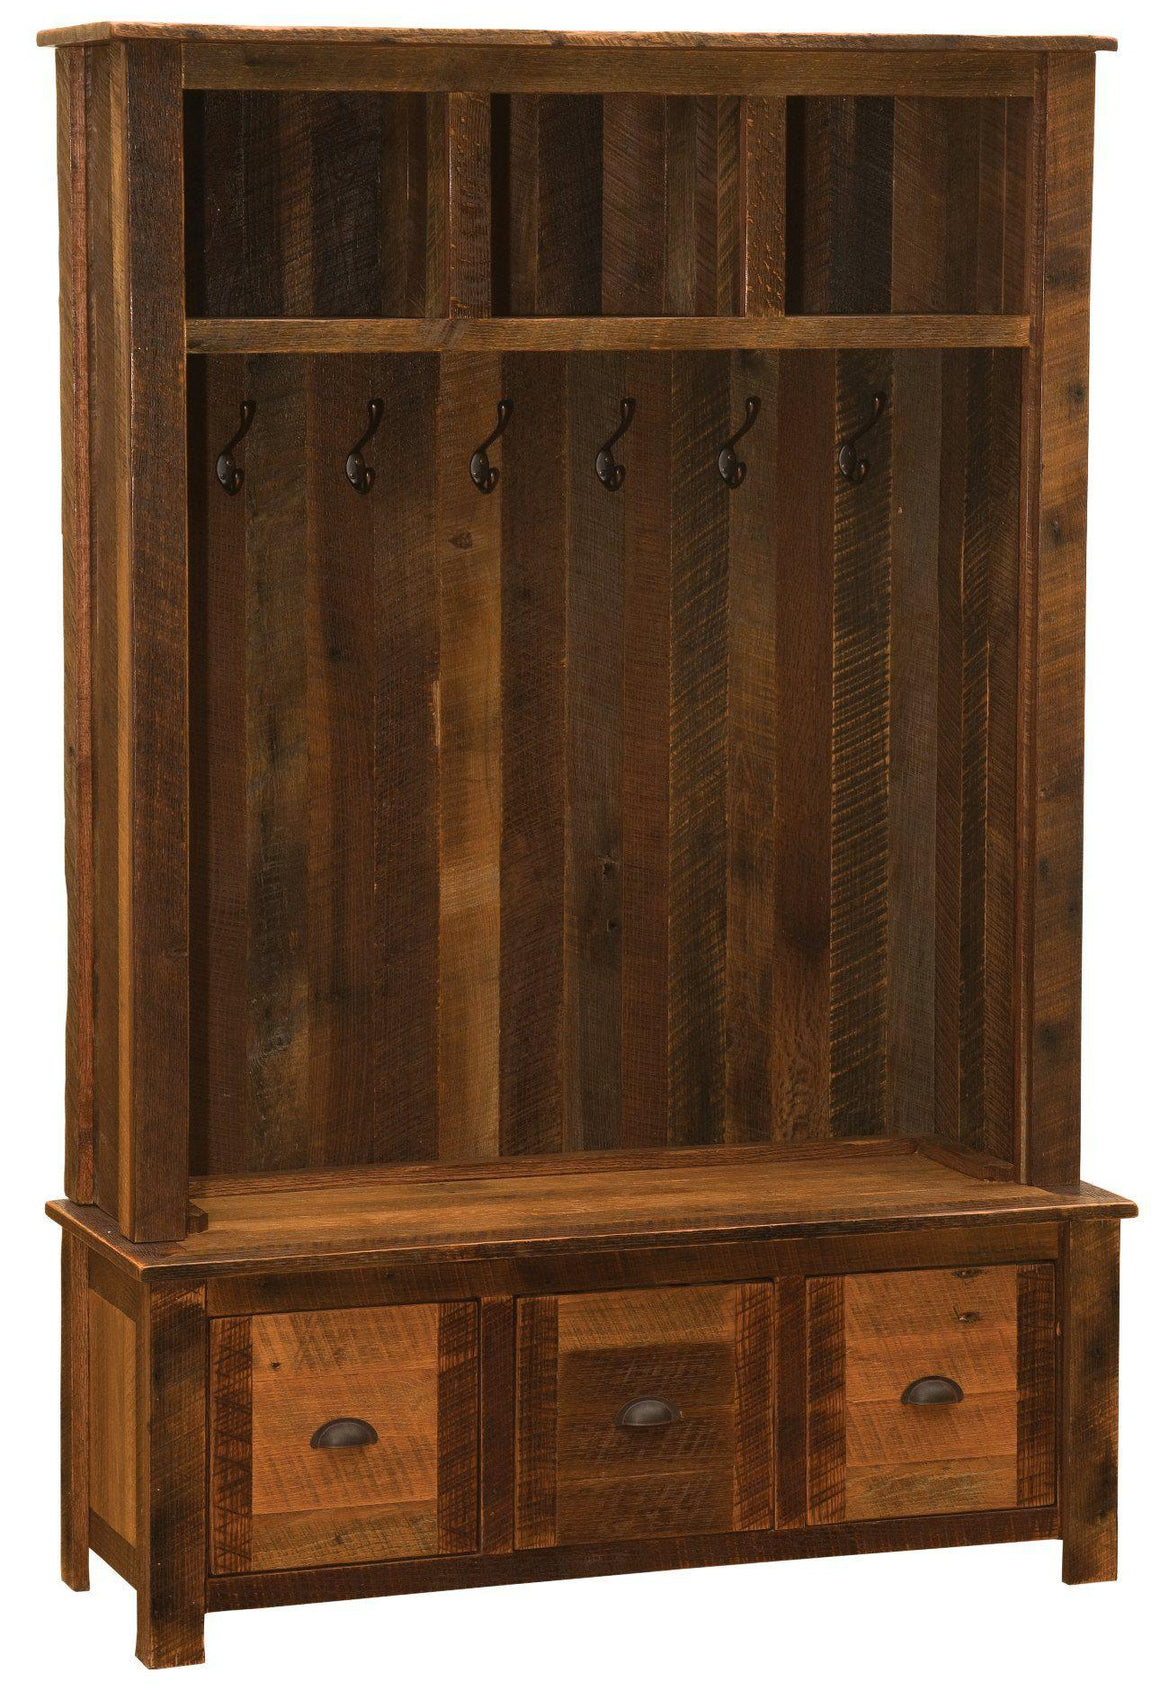 Barnwood Entry Locker Unit - Reclaimed Antique Oak Tobacco Barn Wood - Rustic Deco Incorporated